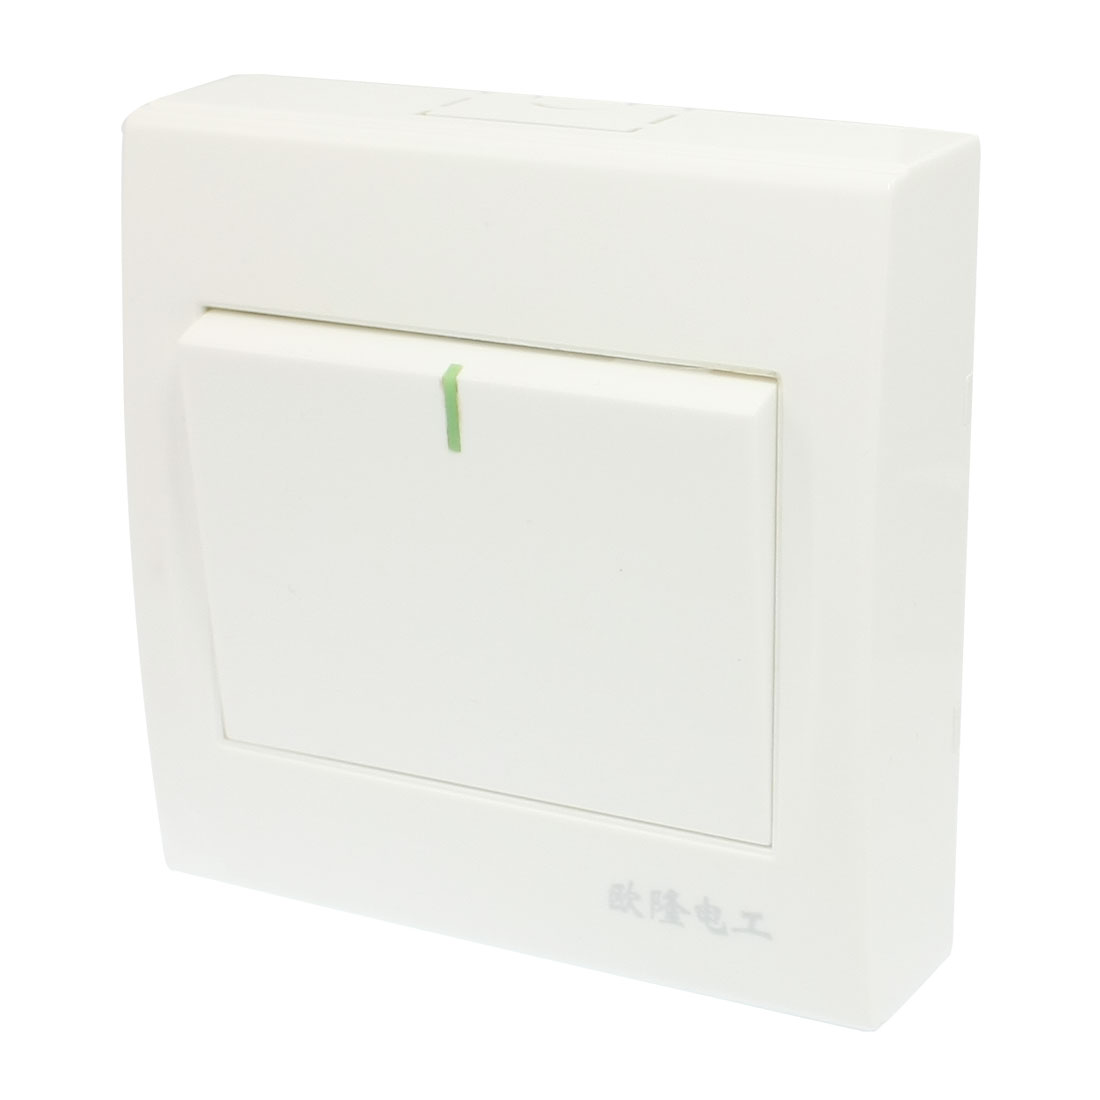 AC 250V 10A 1 Gang White Plastic Housing Control SPDT Wall Panel Switch